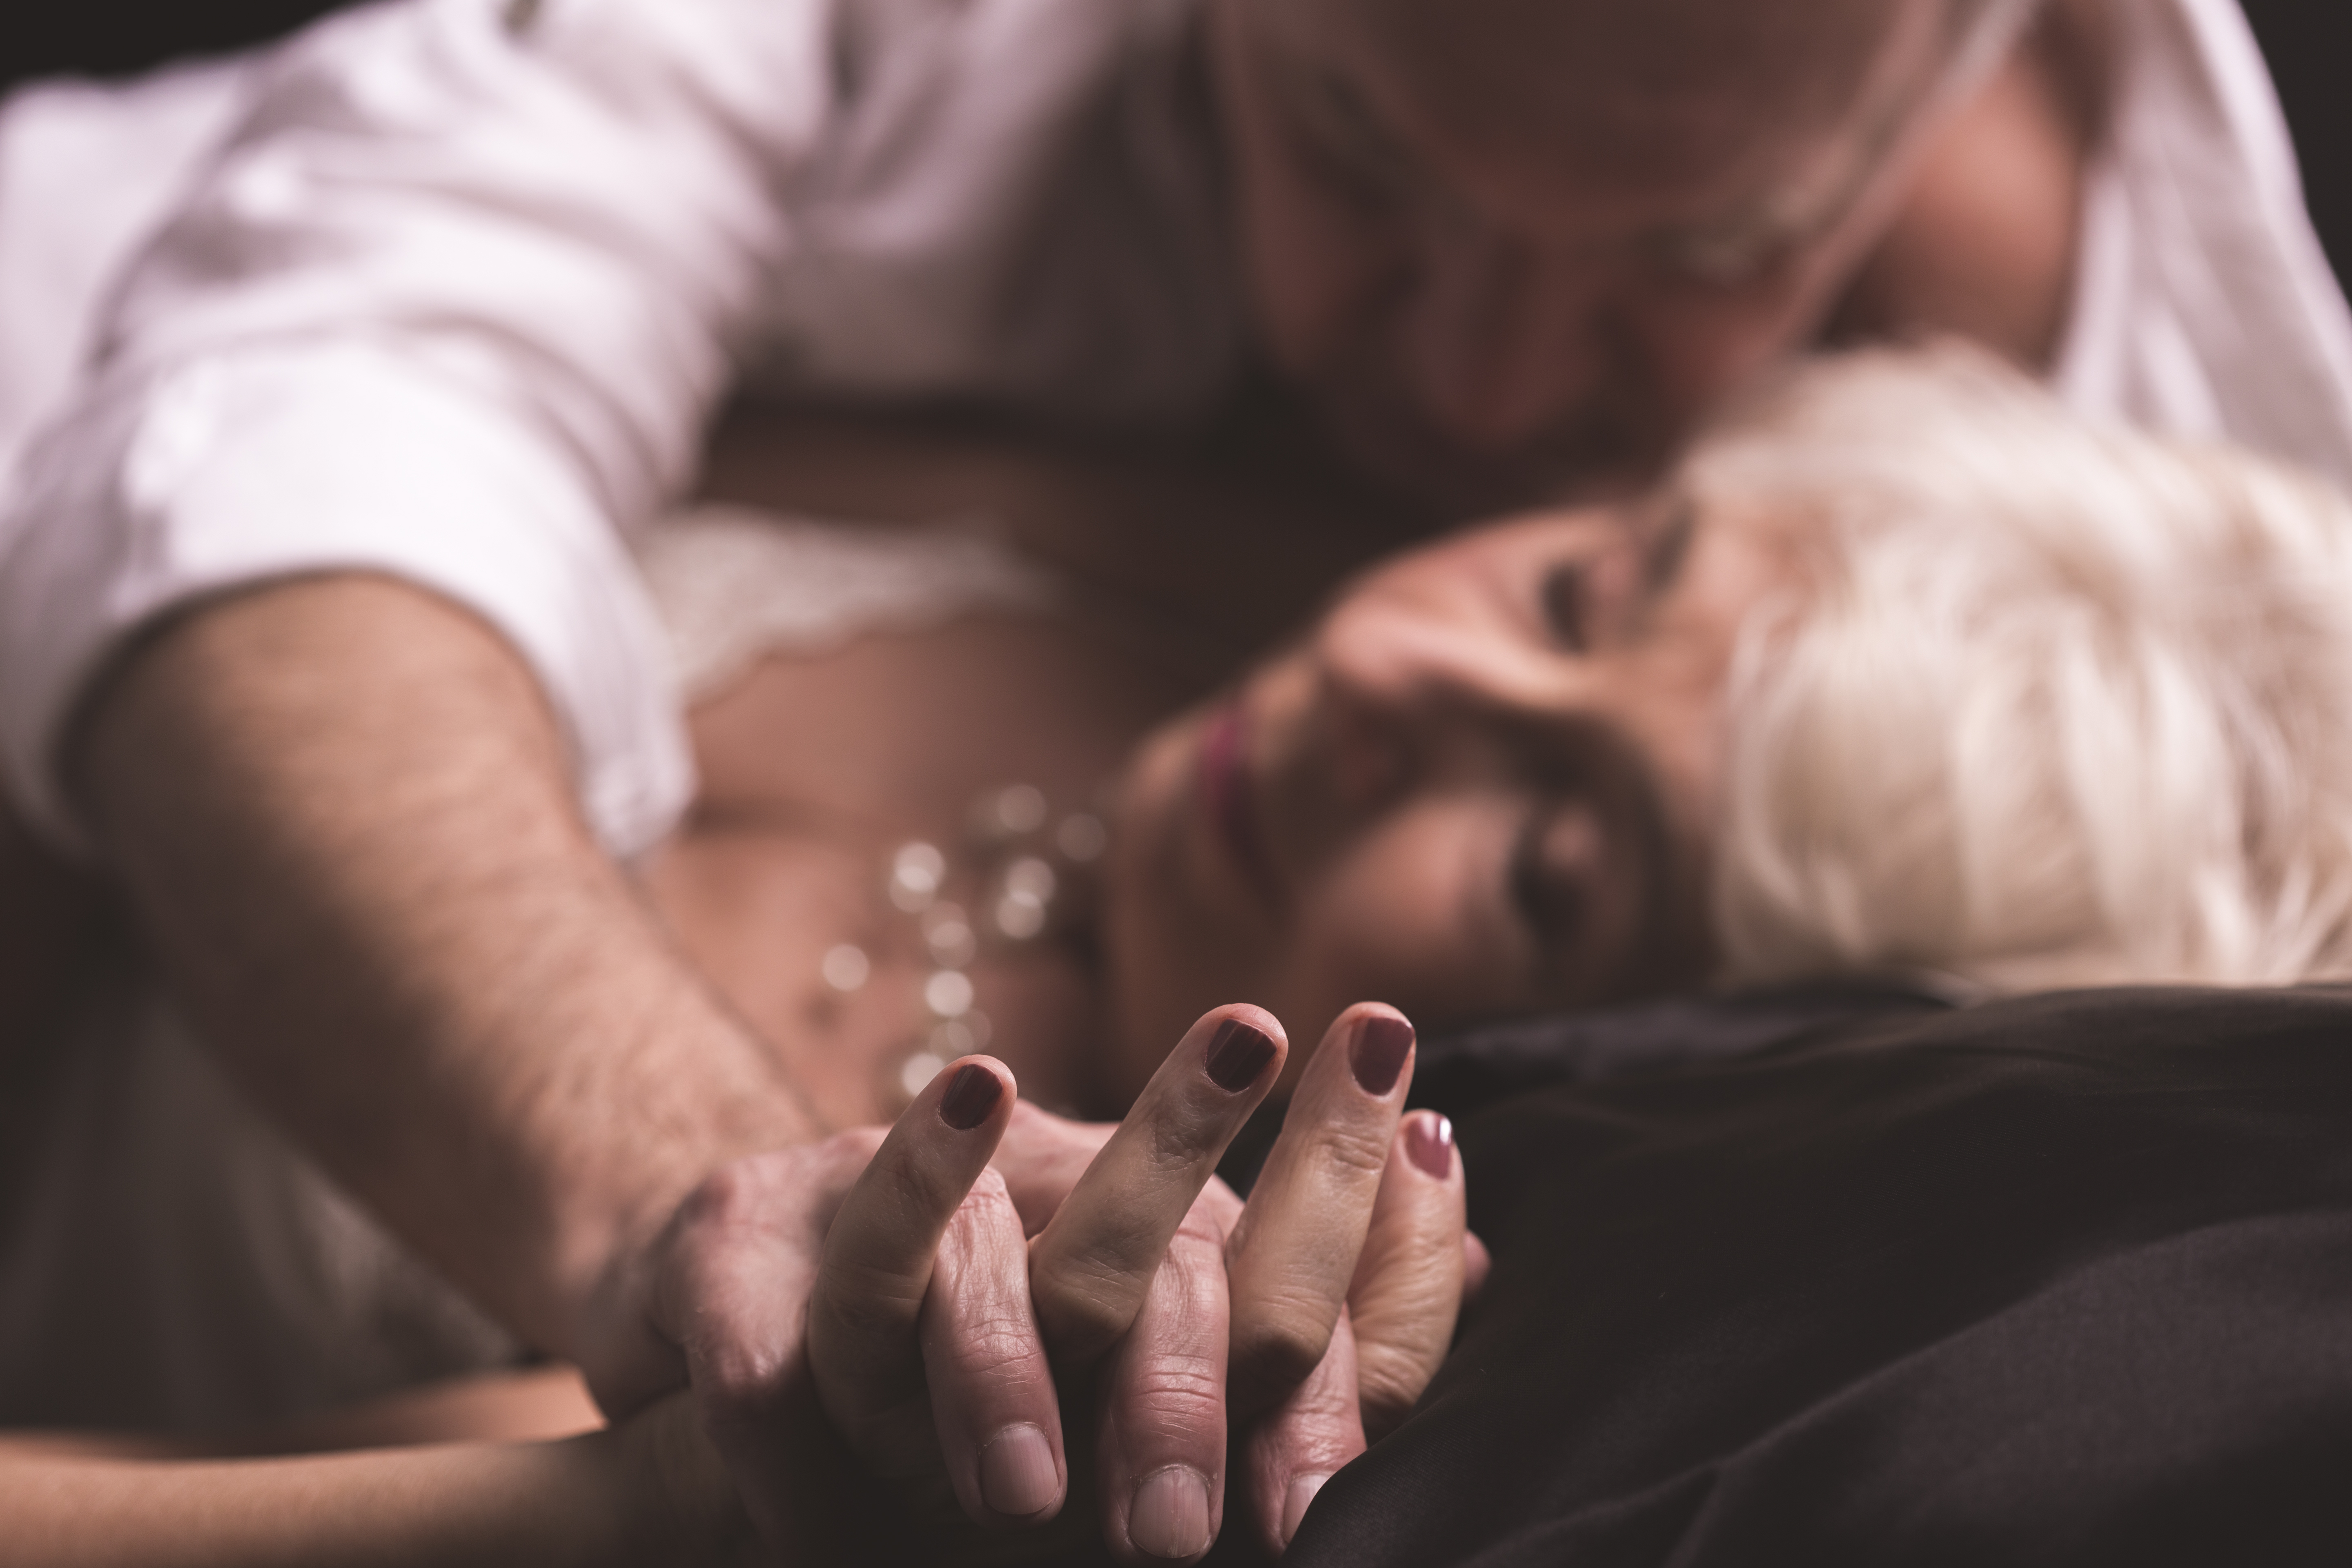 An active sex life improves brain power in older adults